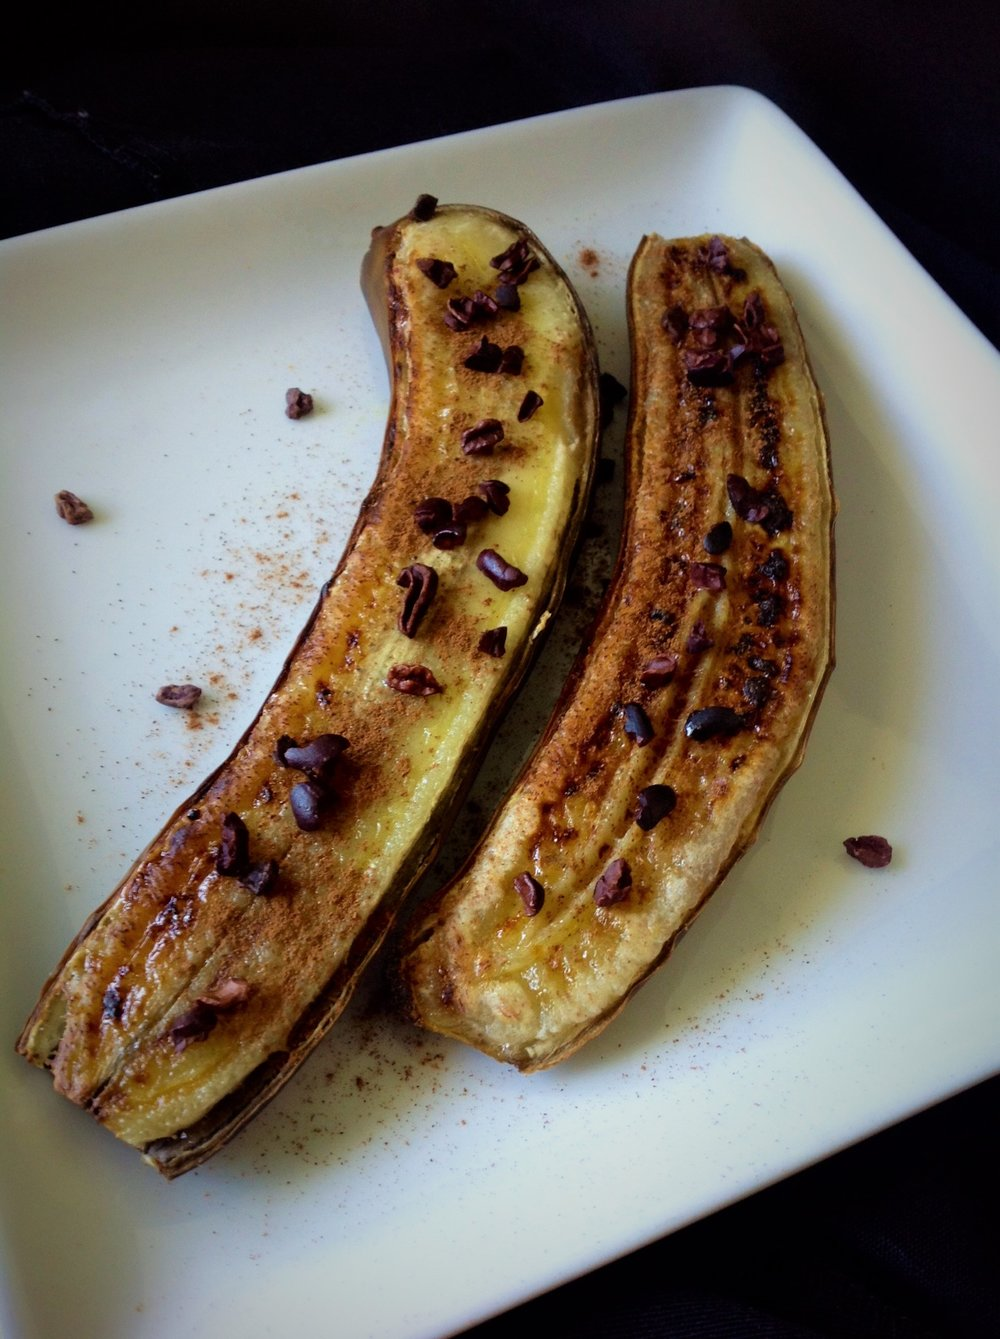 Broiled Banana with Cinnamon and Cocoa Nibs - Healthy, Gluten-Free, Grain-Free, Paleo, Oil-Free, Plant-Based, Vegan